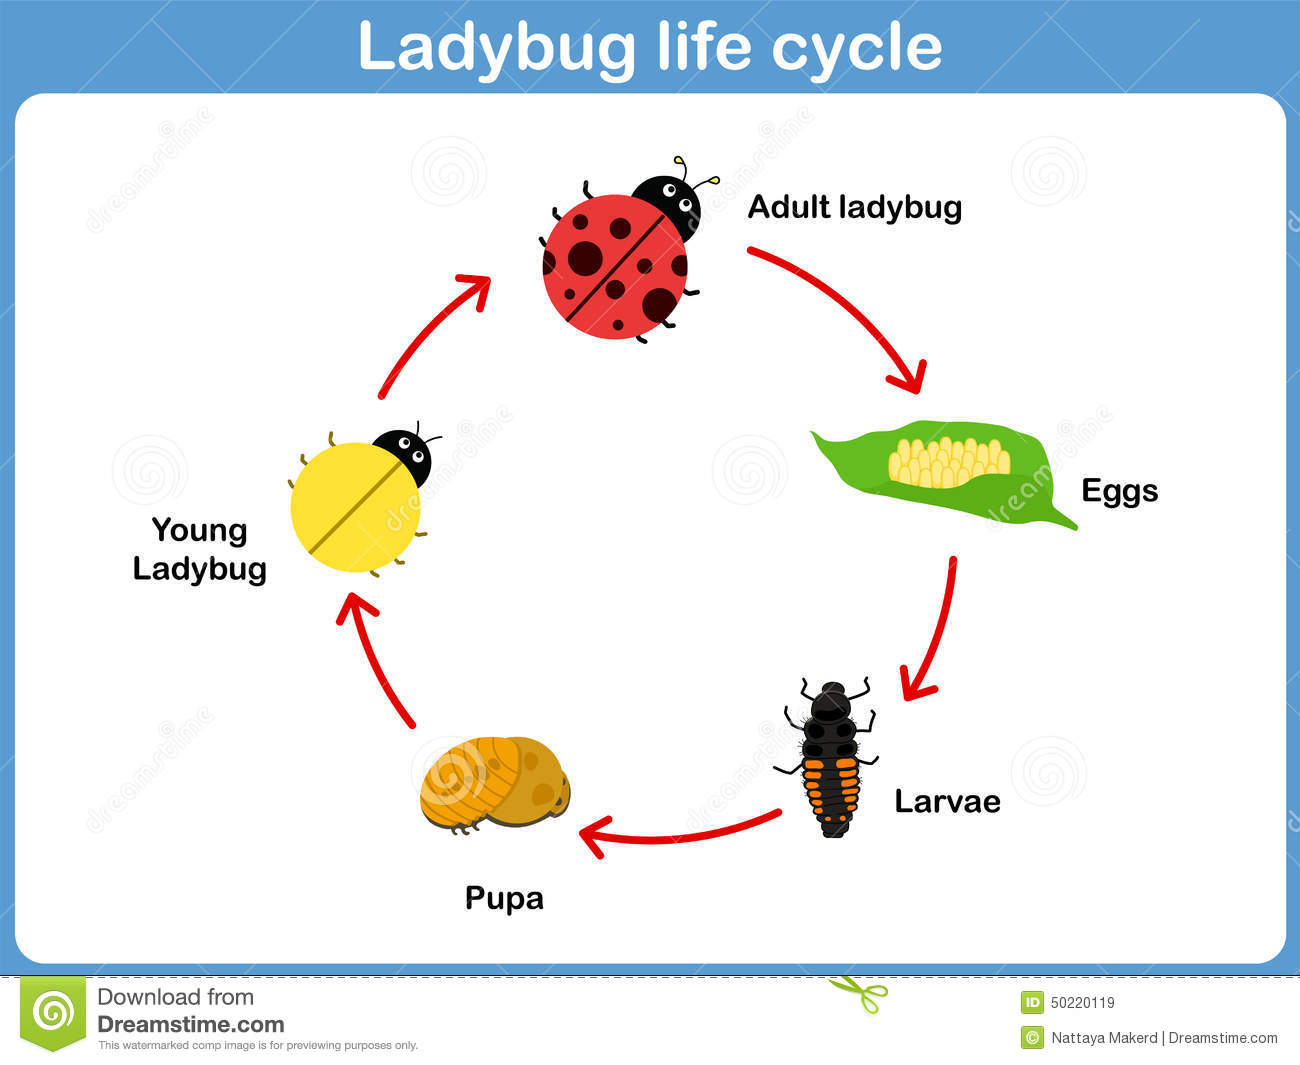 sea turtle life cycle diagram vizio tv input vector of ladybug for kids stock